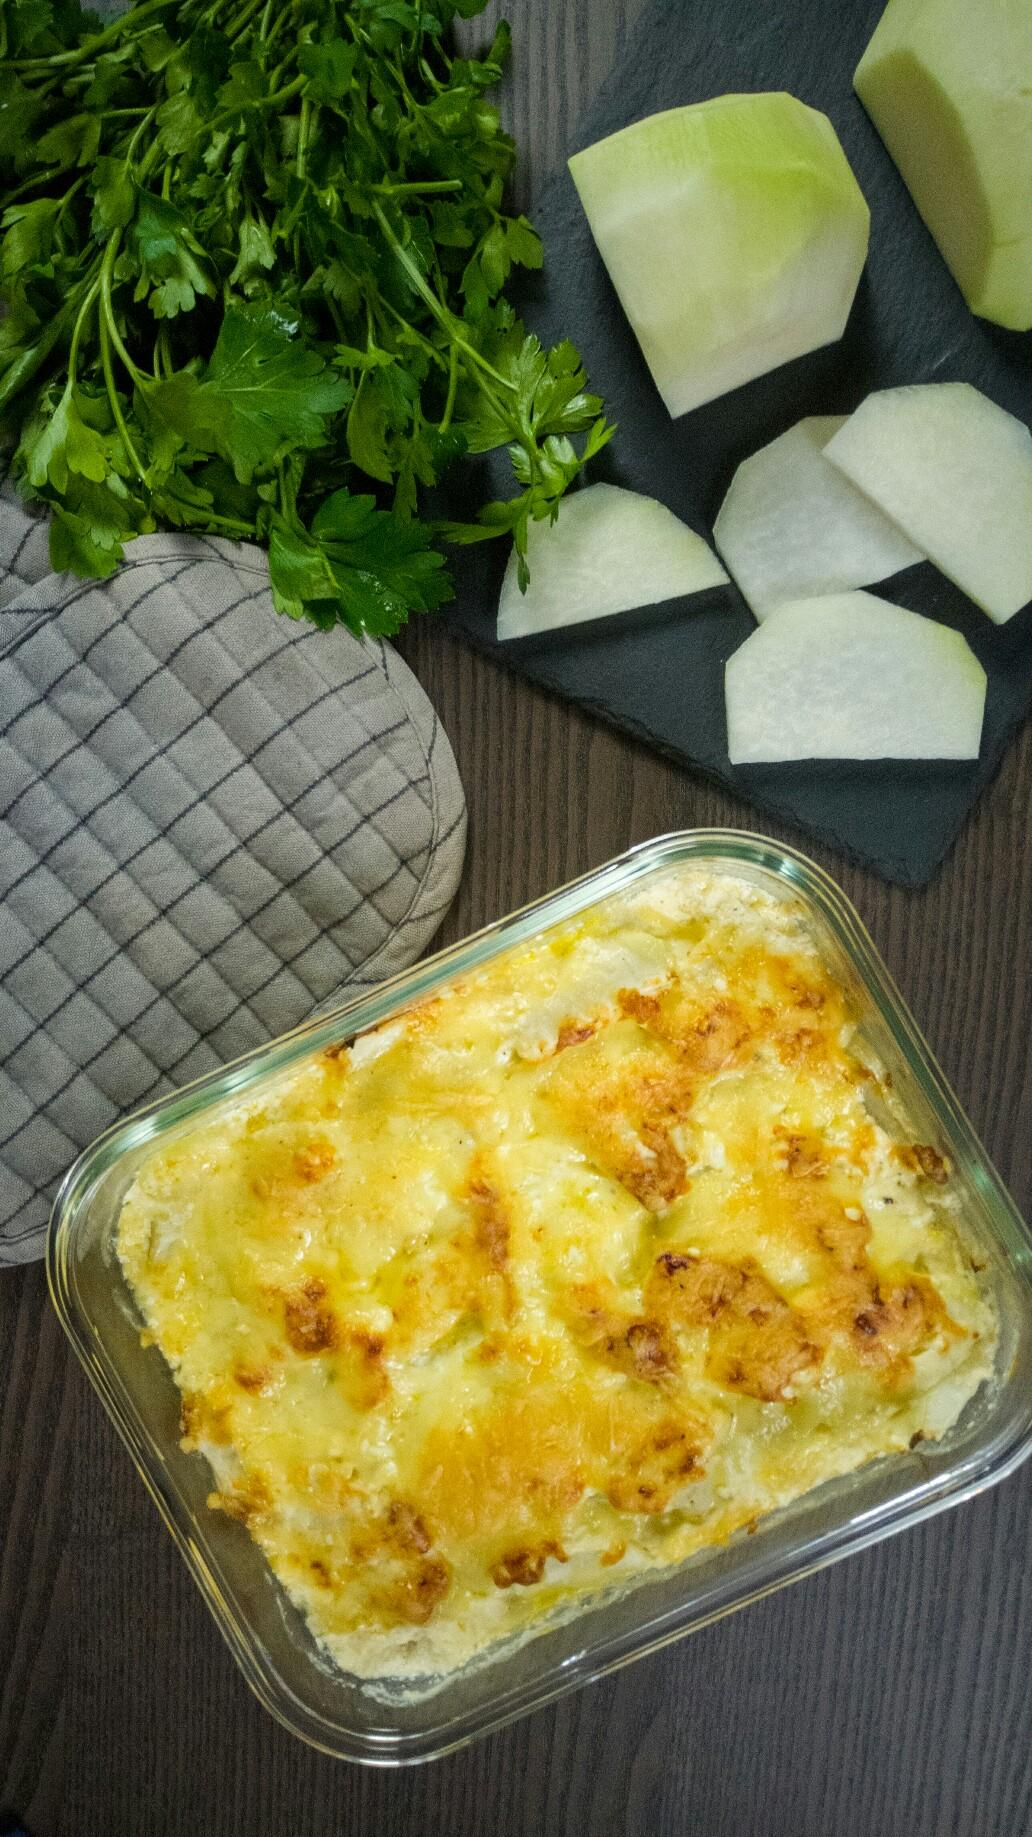 Low Carb Kohlrabigratin